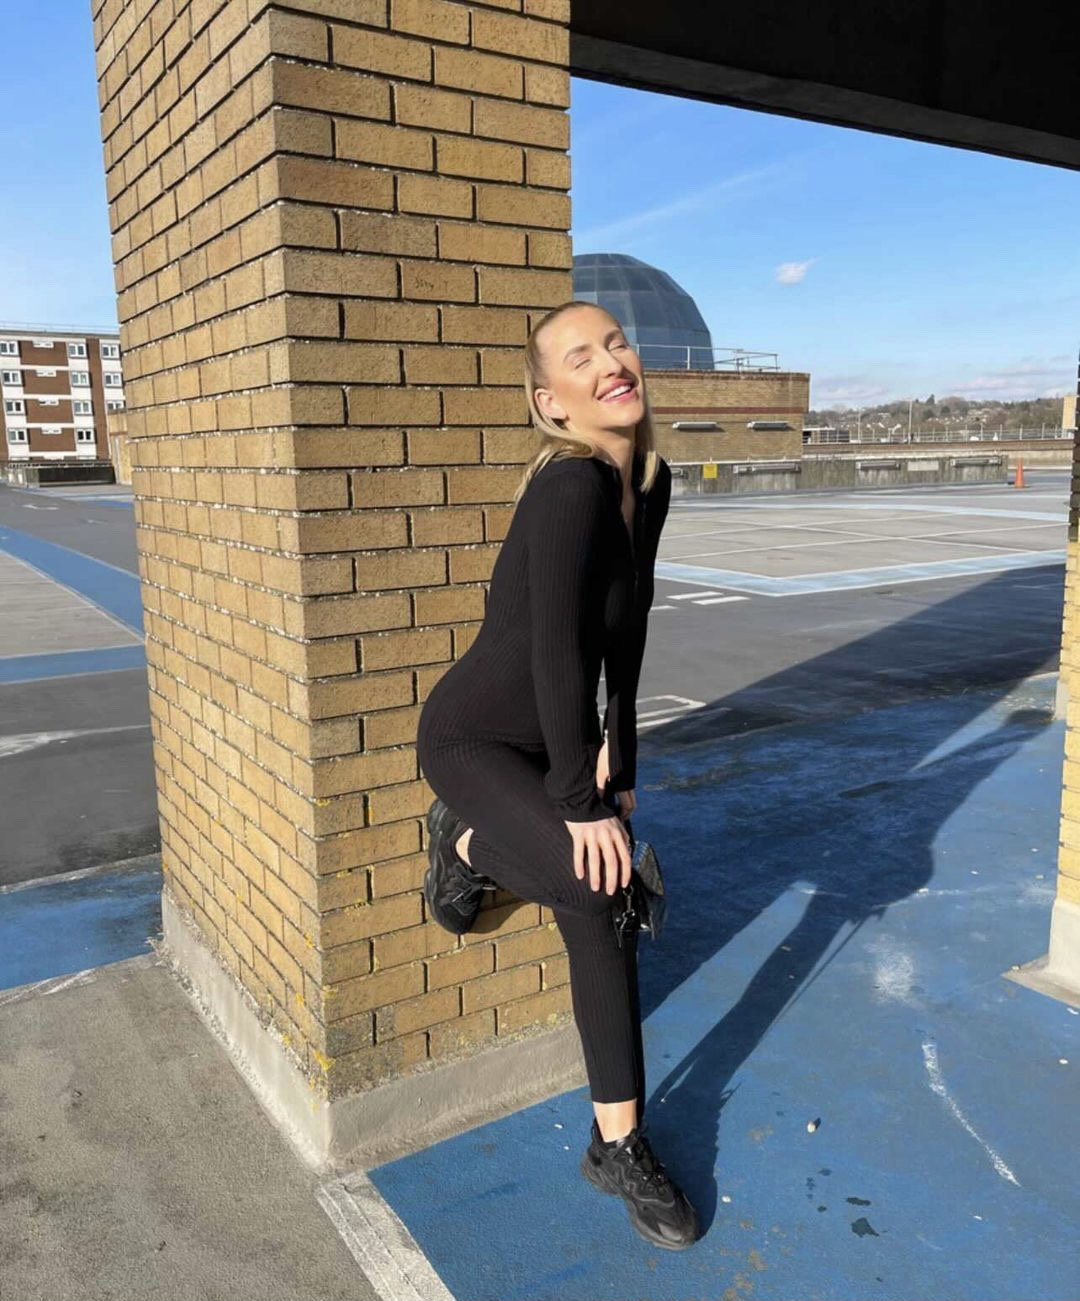 Here we see Alise Murray in a car park sporting an all black outfit as she playful poses leaning one leg on a pillar behind her.